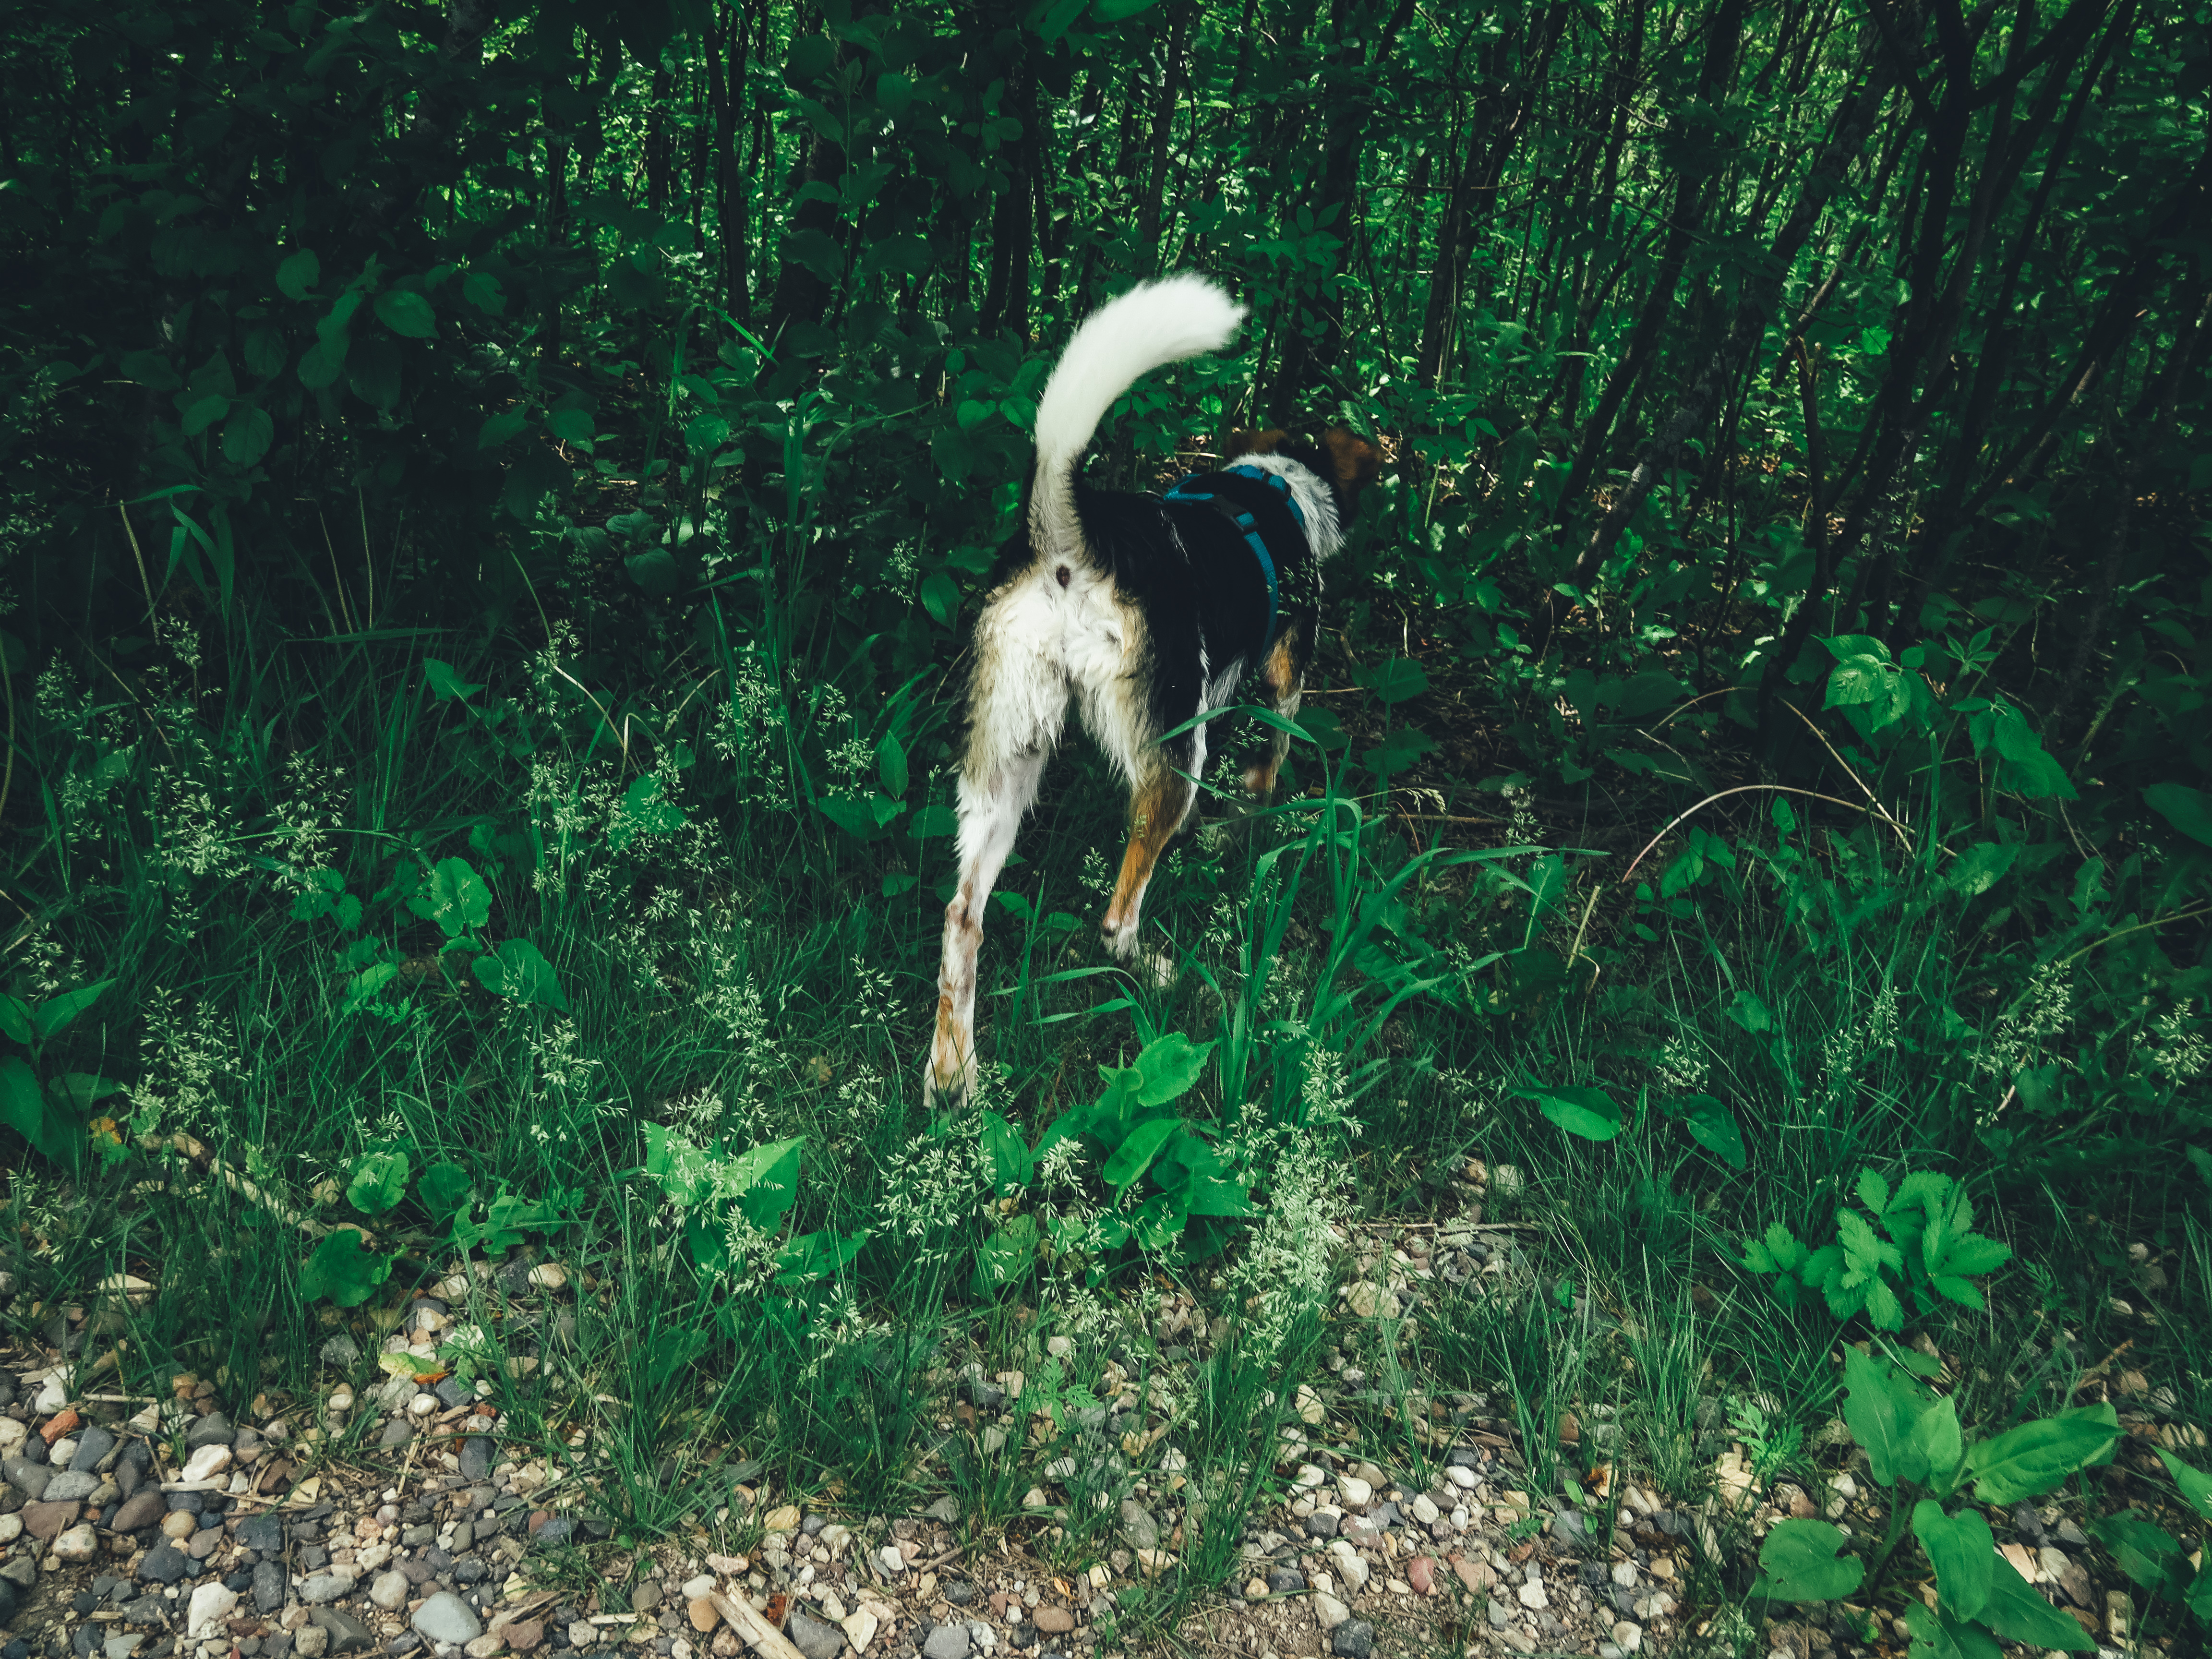 Pixie Exploring in the Woods